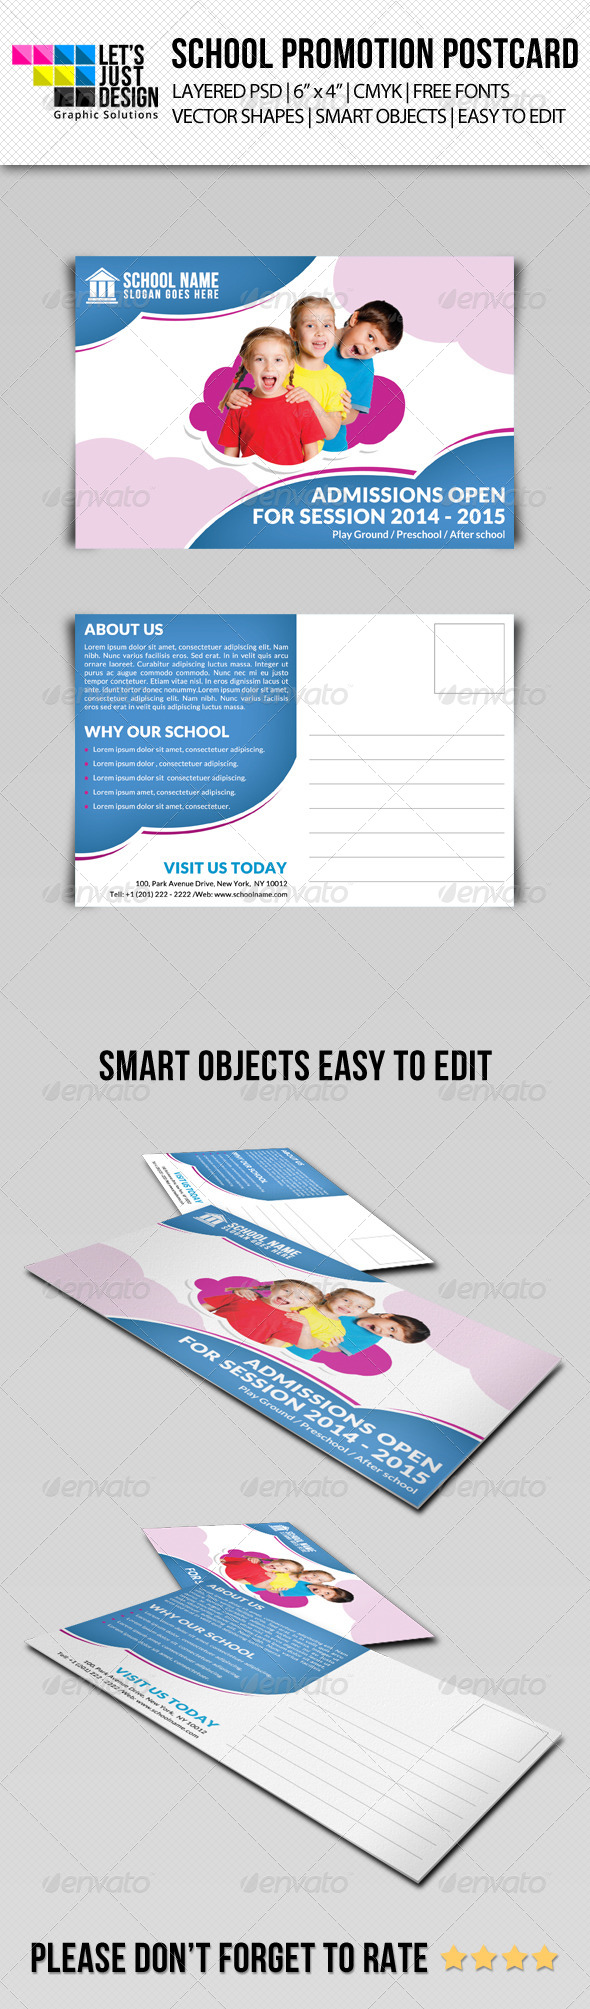 GraphicRiver School Promotion Postcard Template 7933627